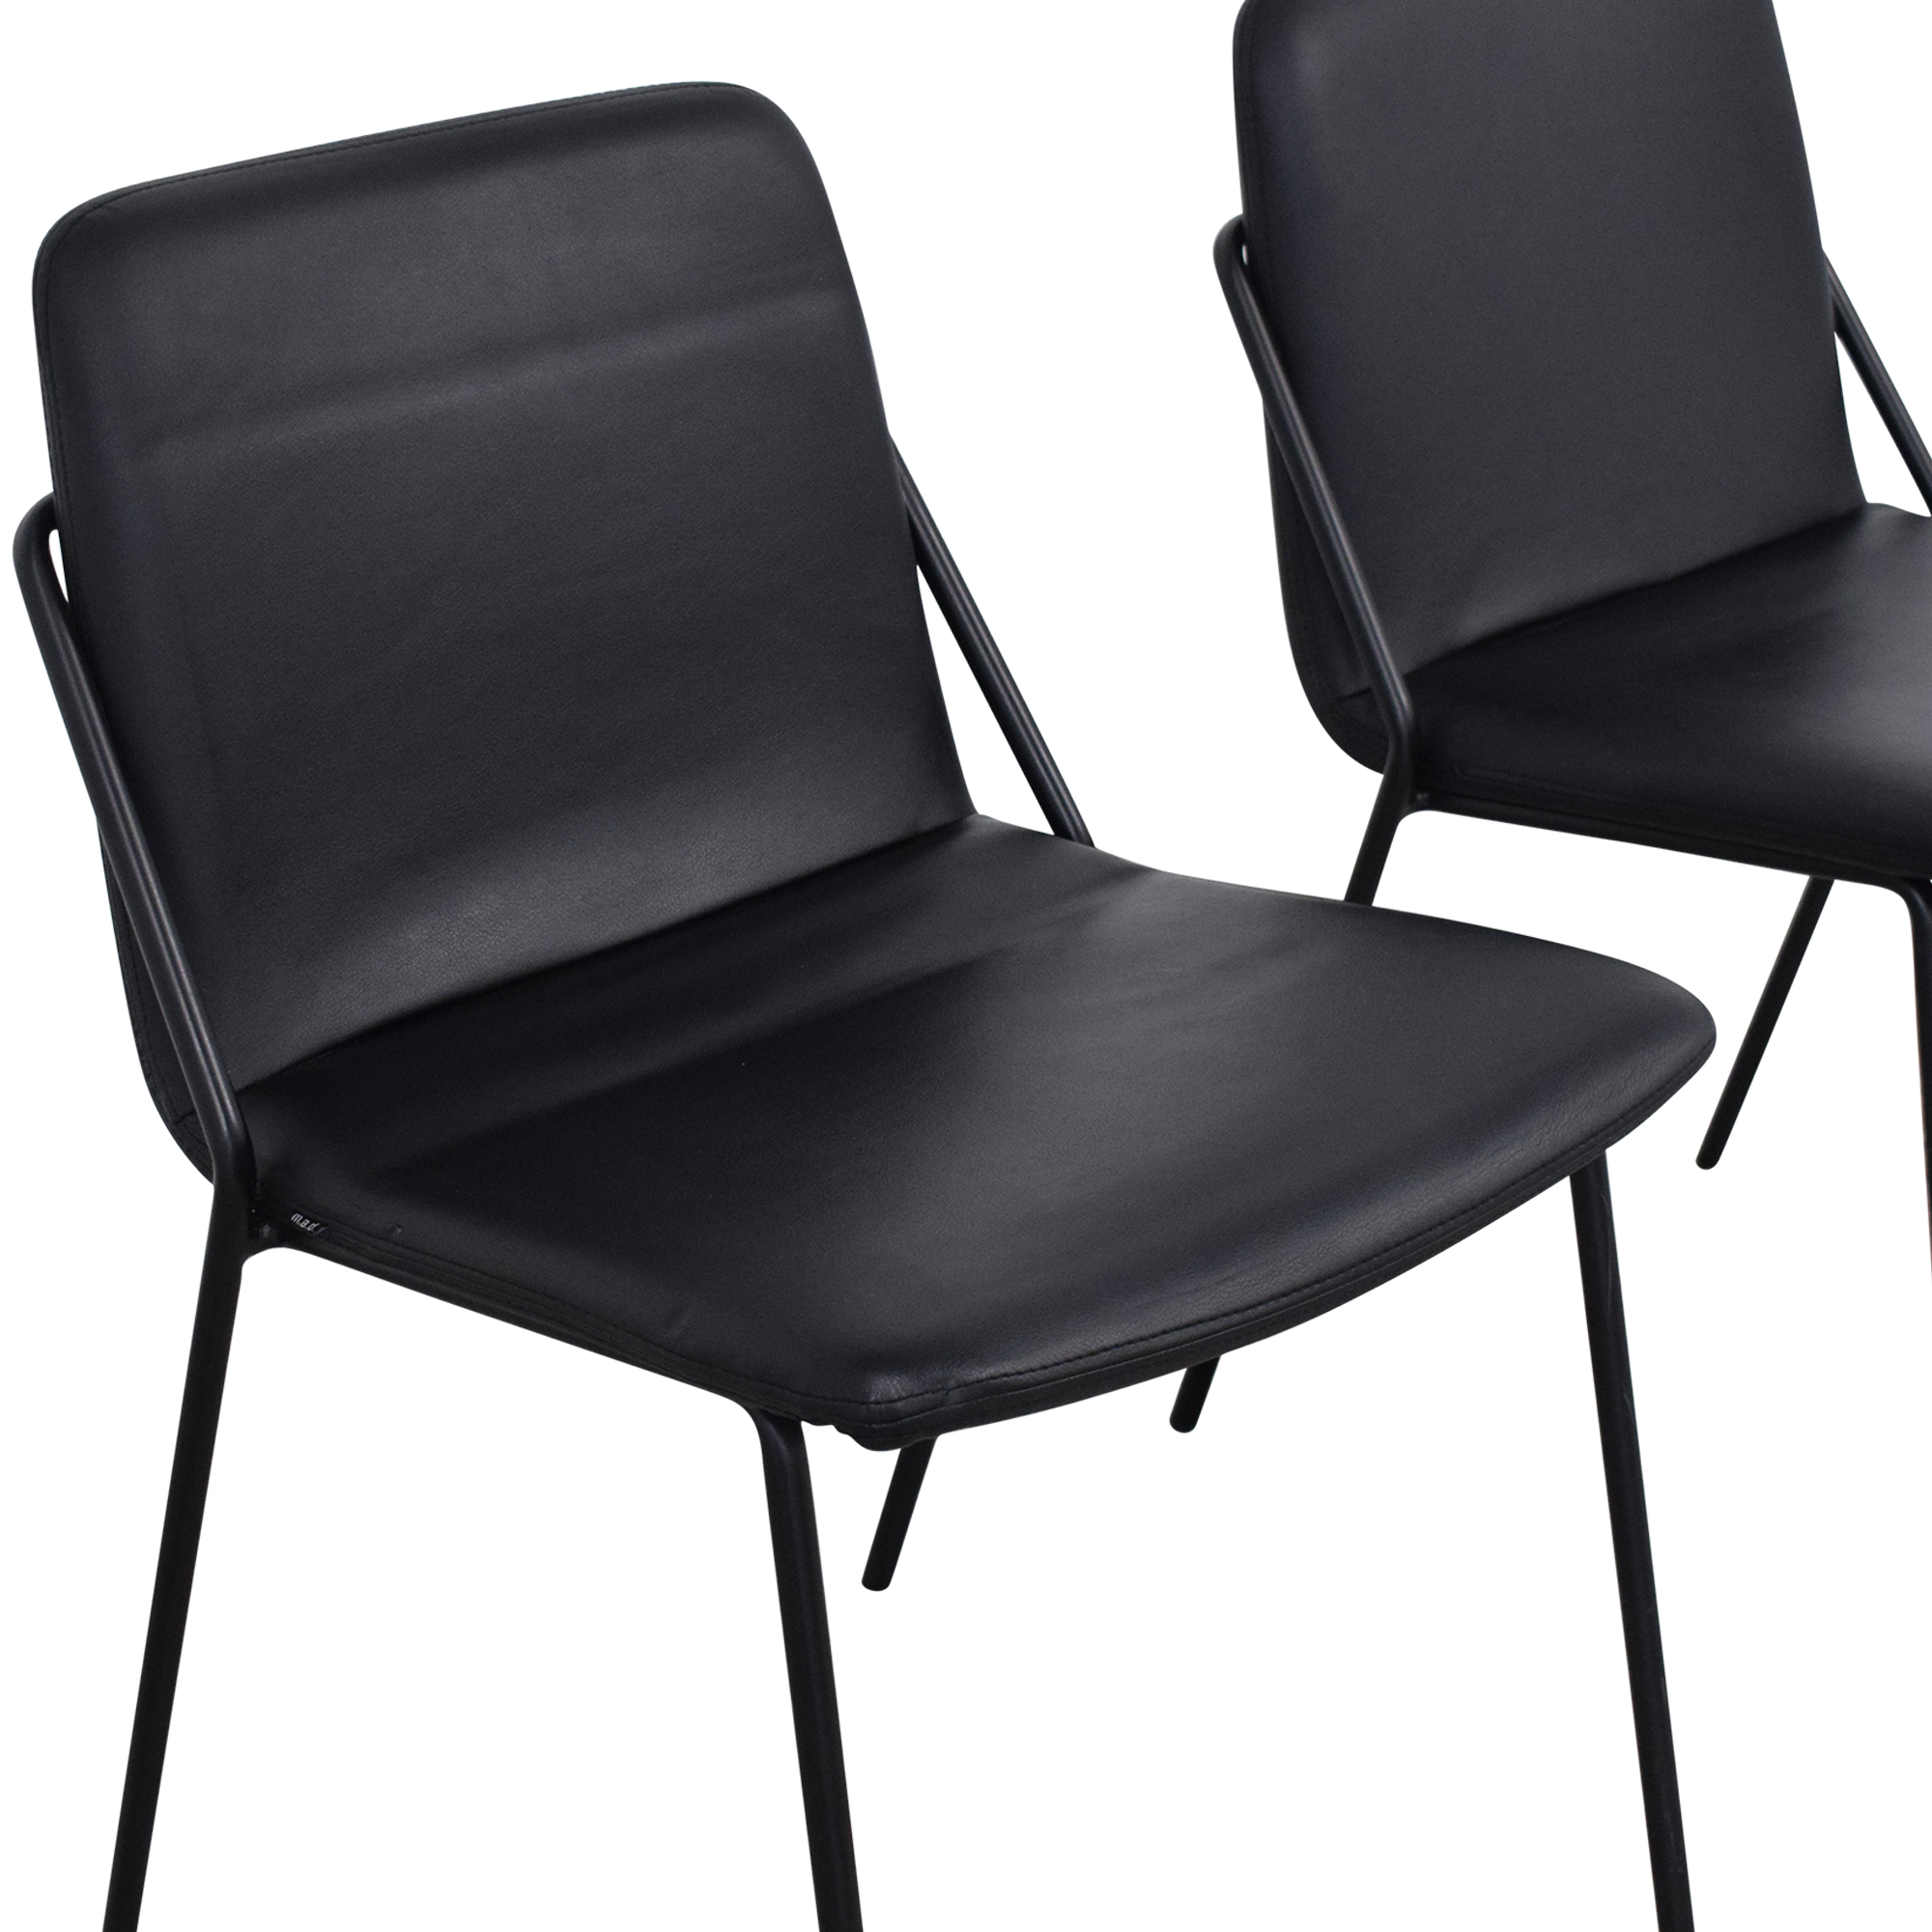 m.a.d. m.a.d. Sling Upholstered Leather Chairs discount